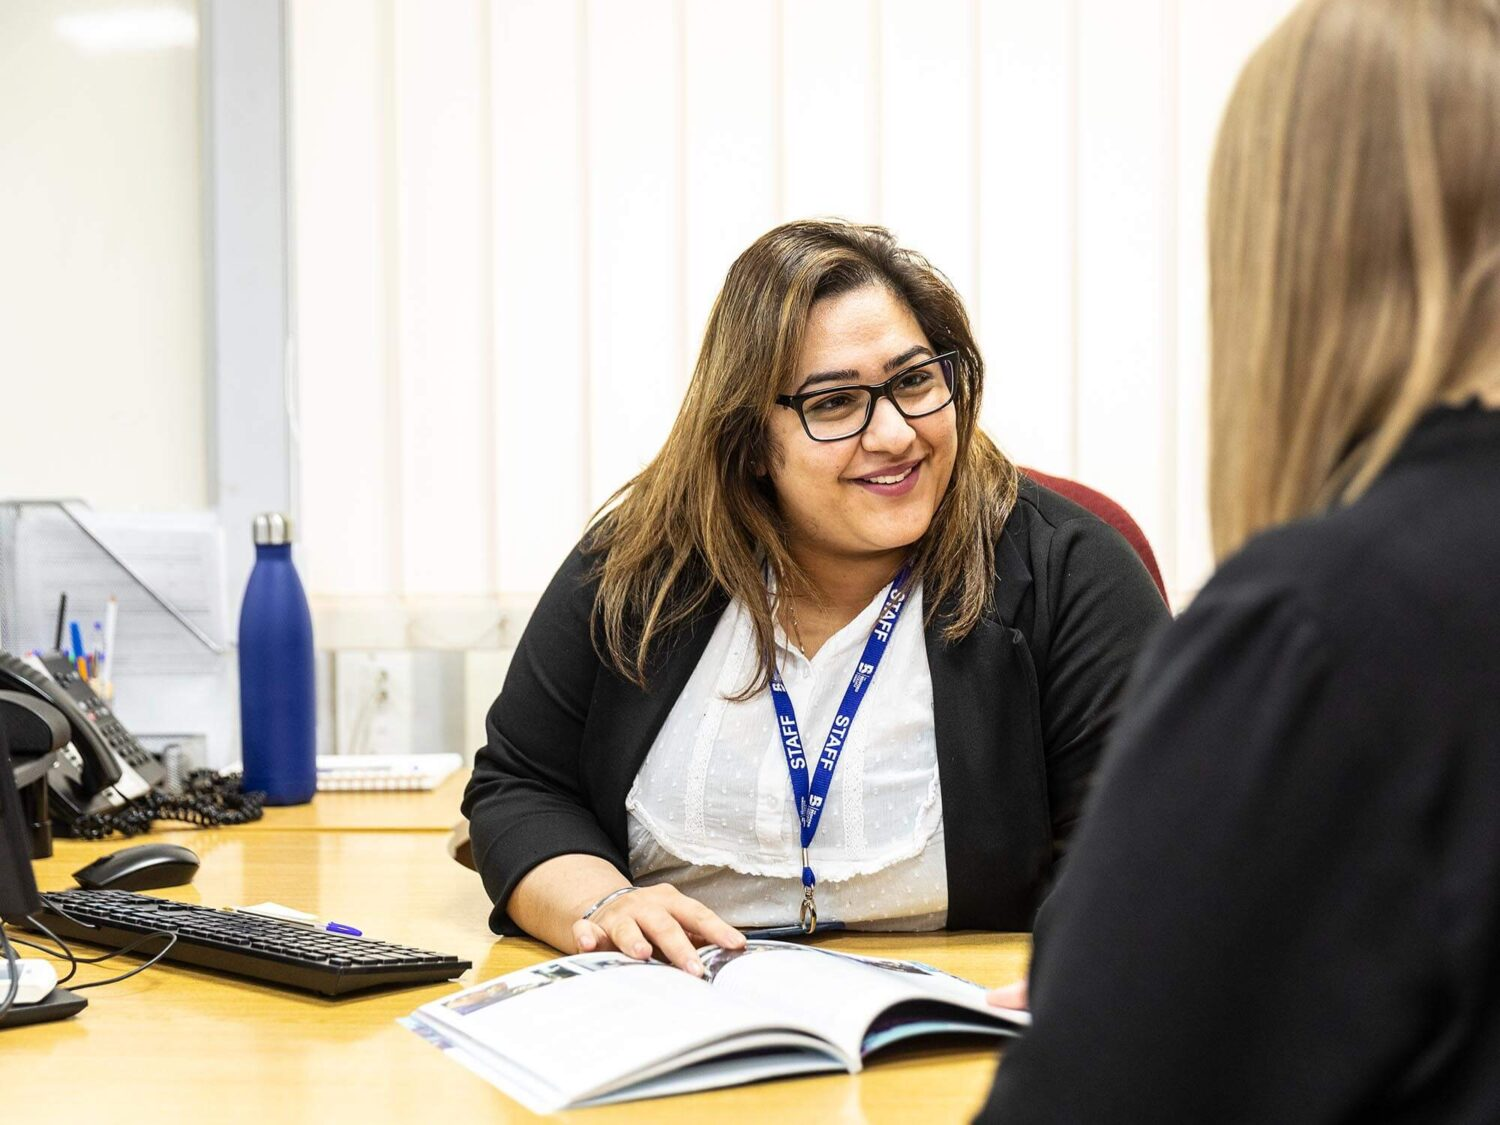 Bedford College Group staff member